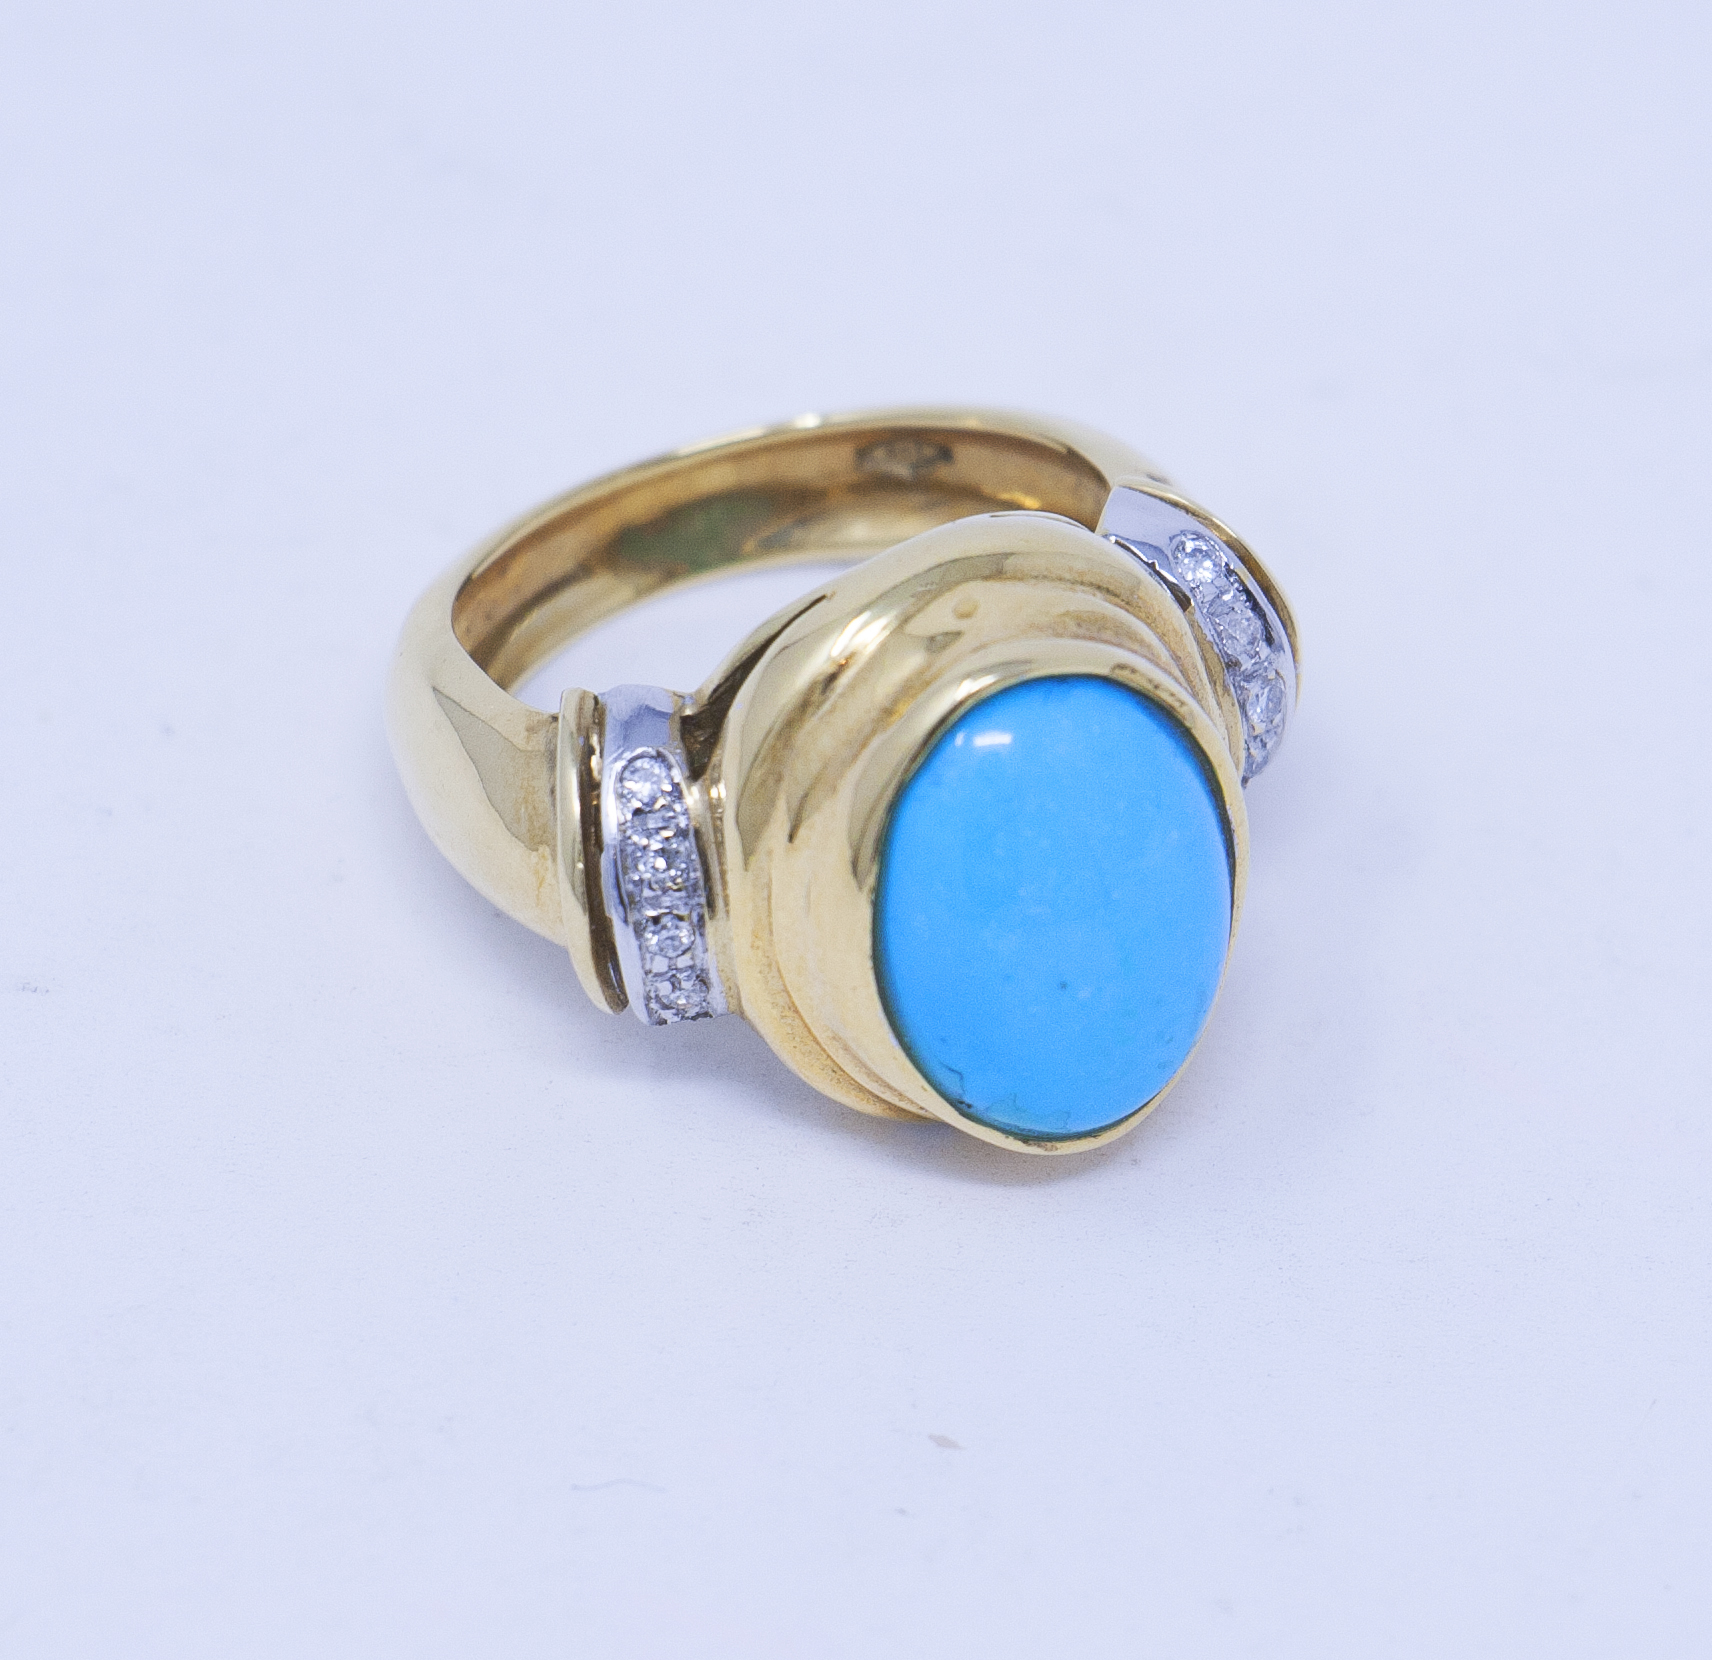 1970s yellow gold Turquoise ring with diamonds